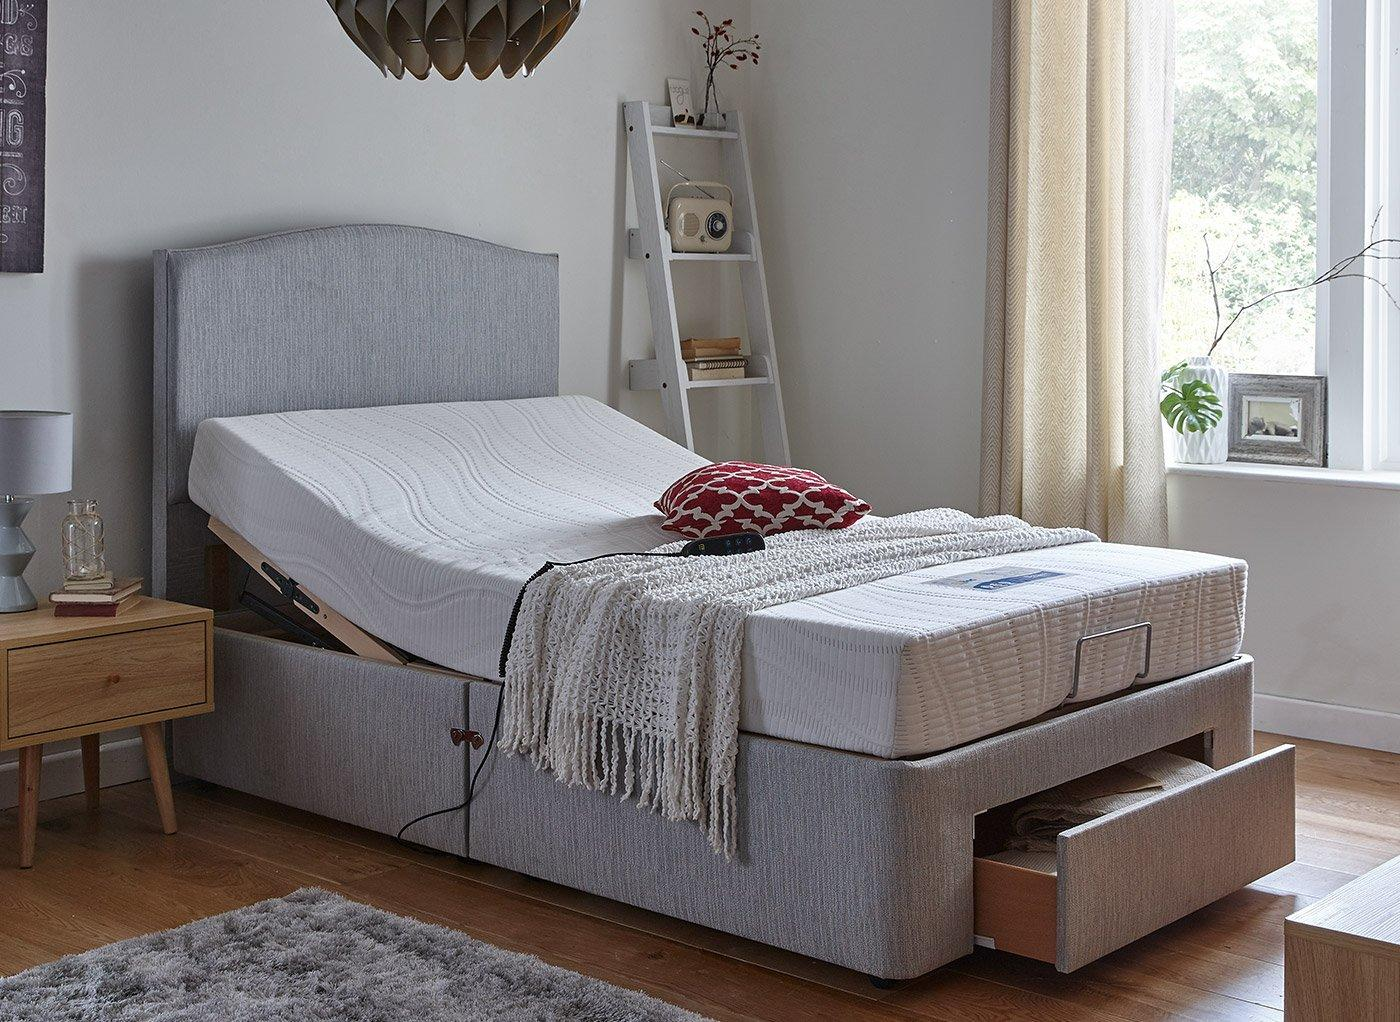 Fontwell Mattress With Standard Grey Adjustable Divan Bed - Firm 4'0 Small double